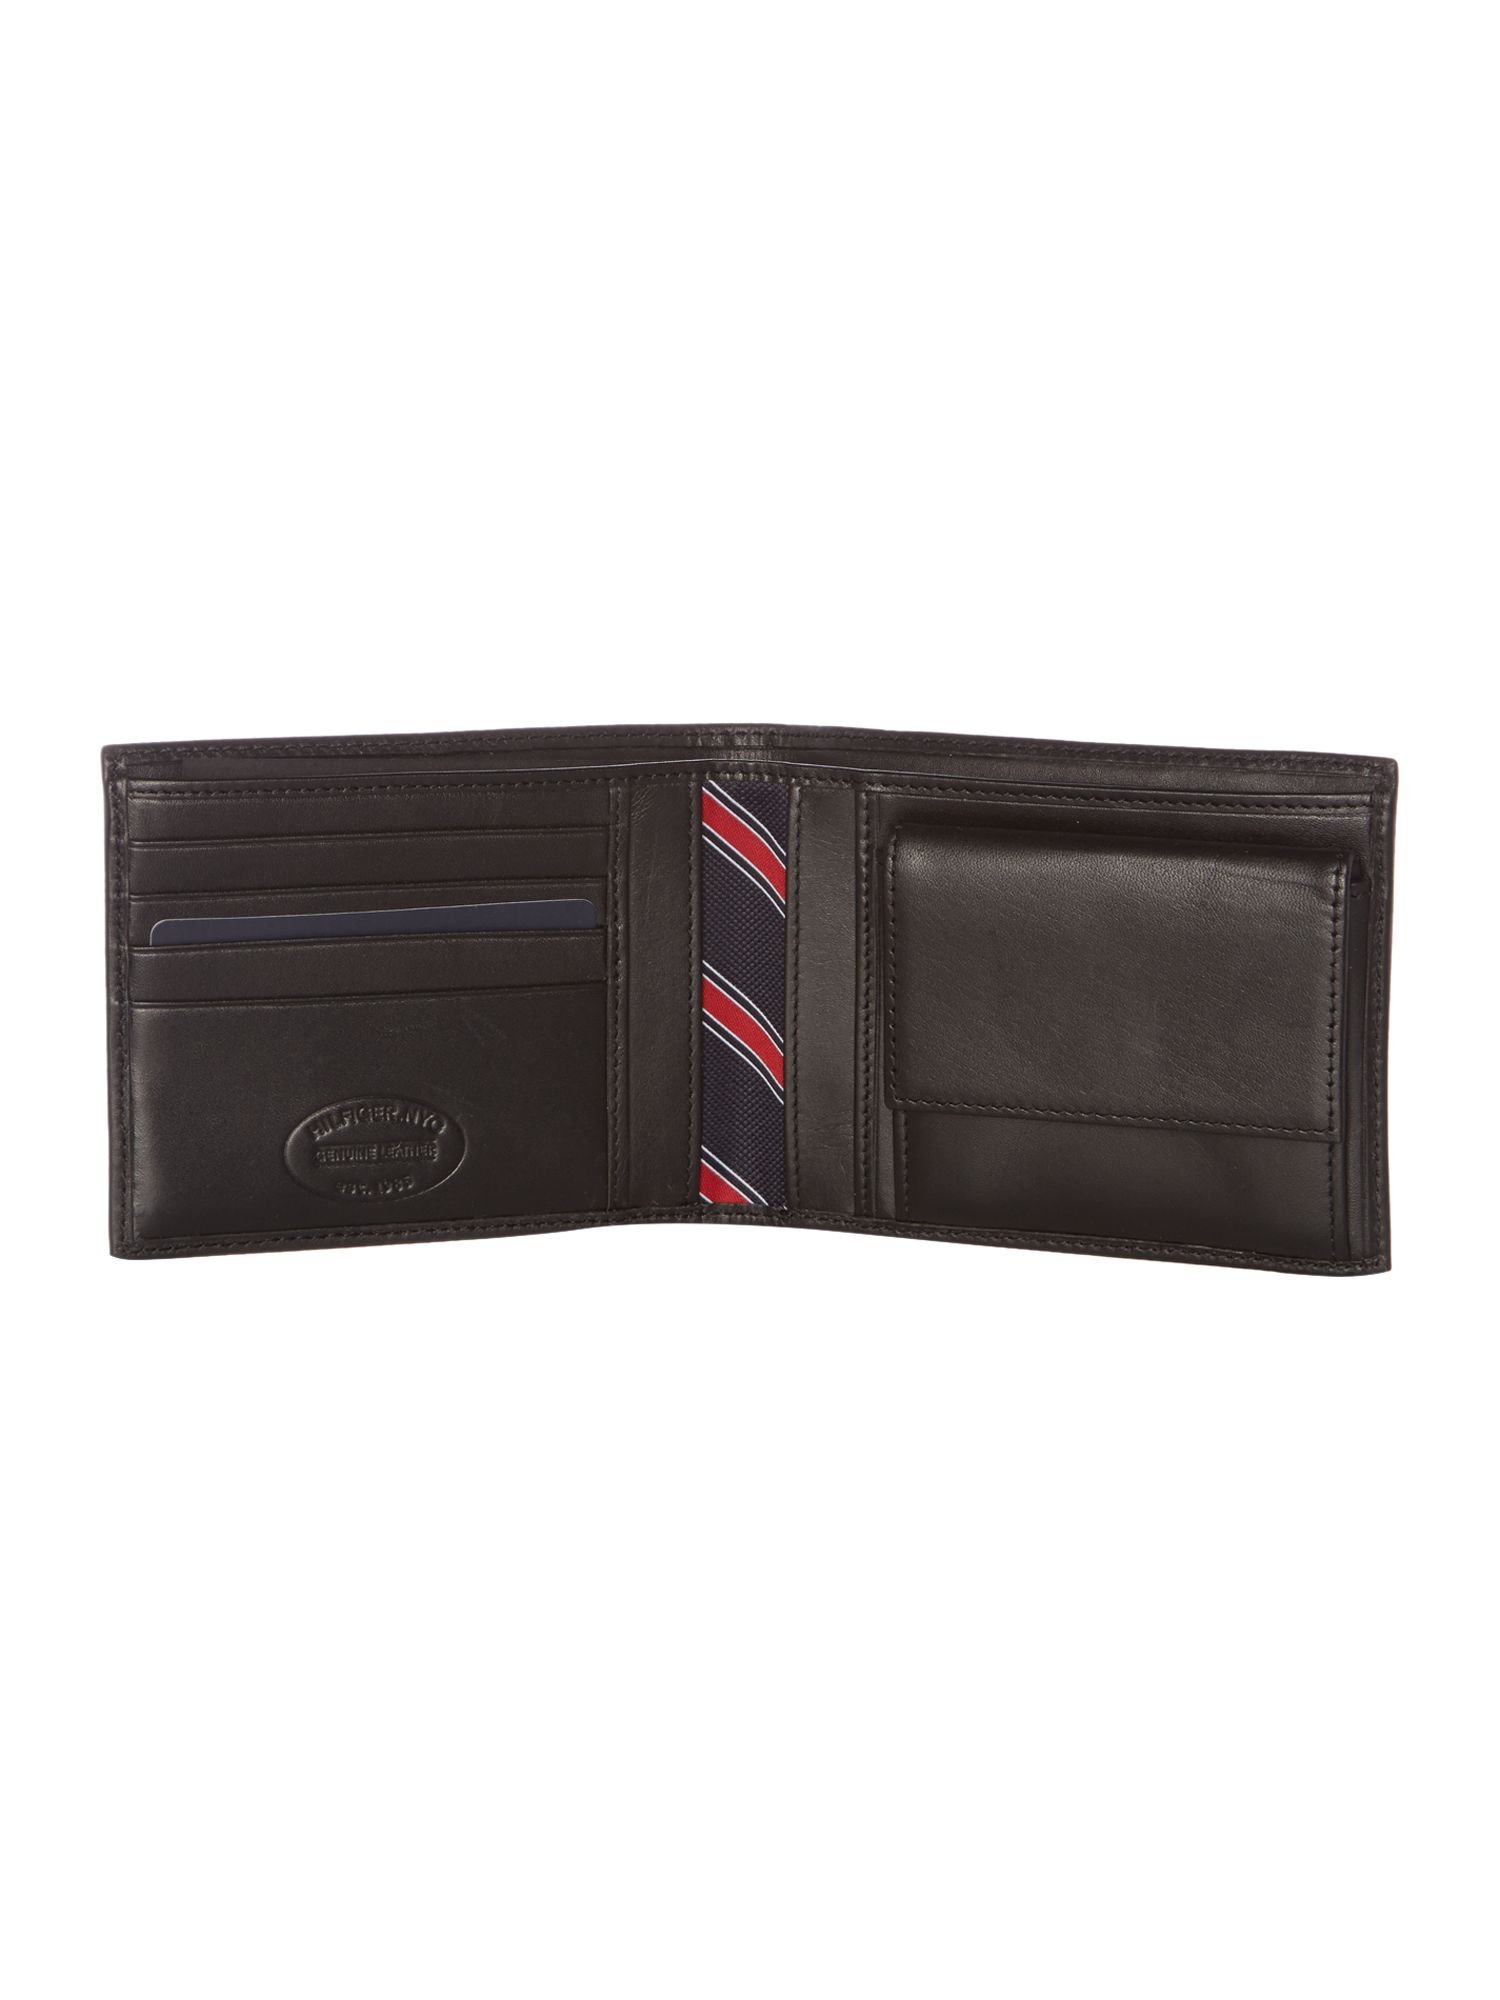 Eton coin pocket wallet